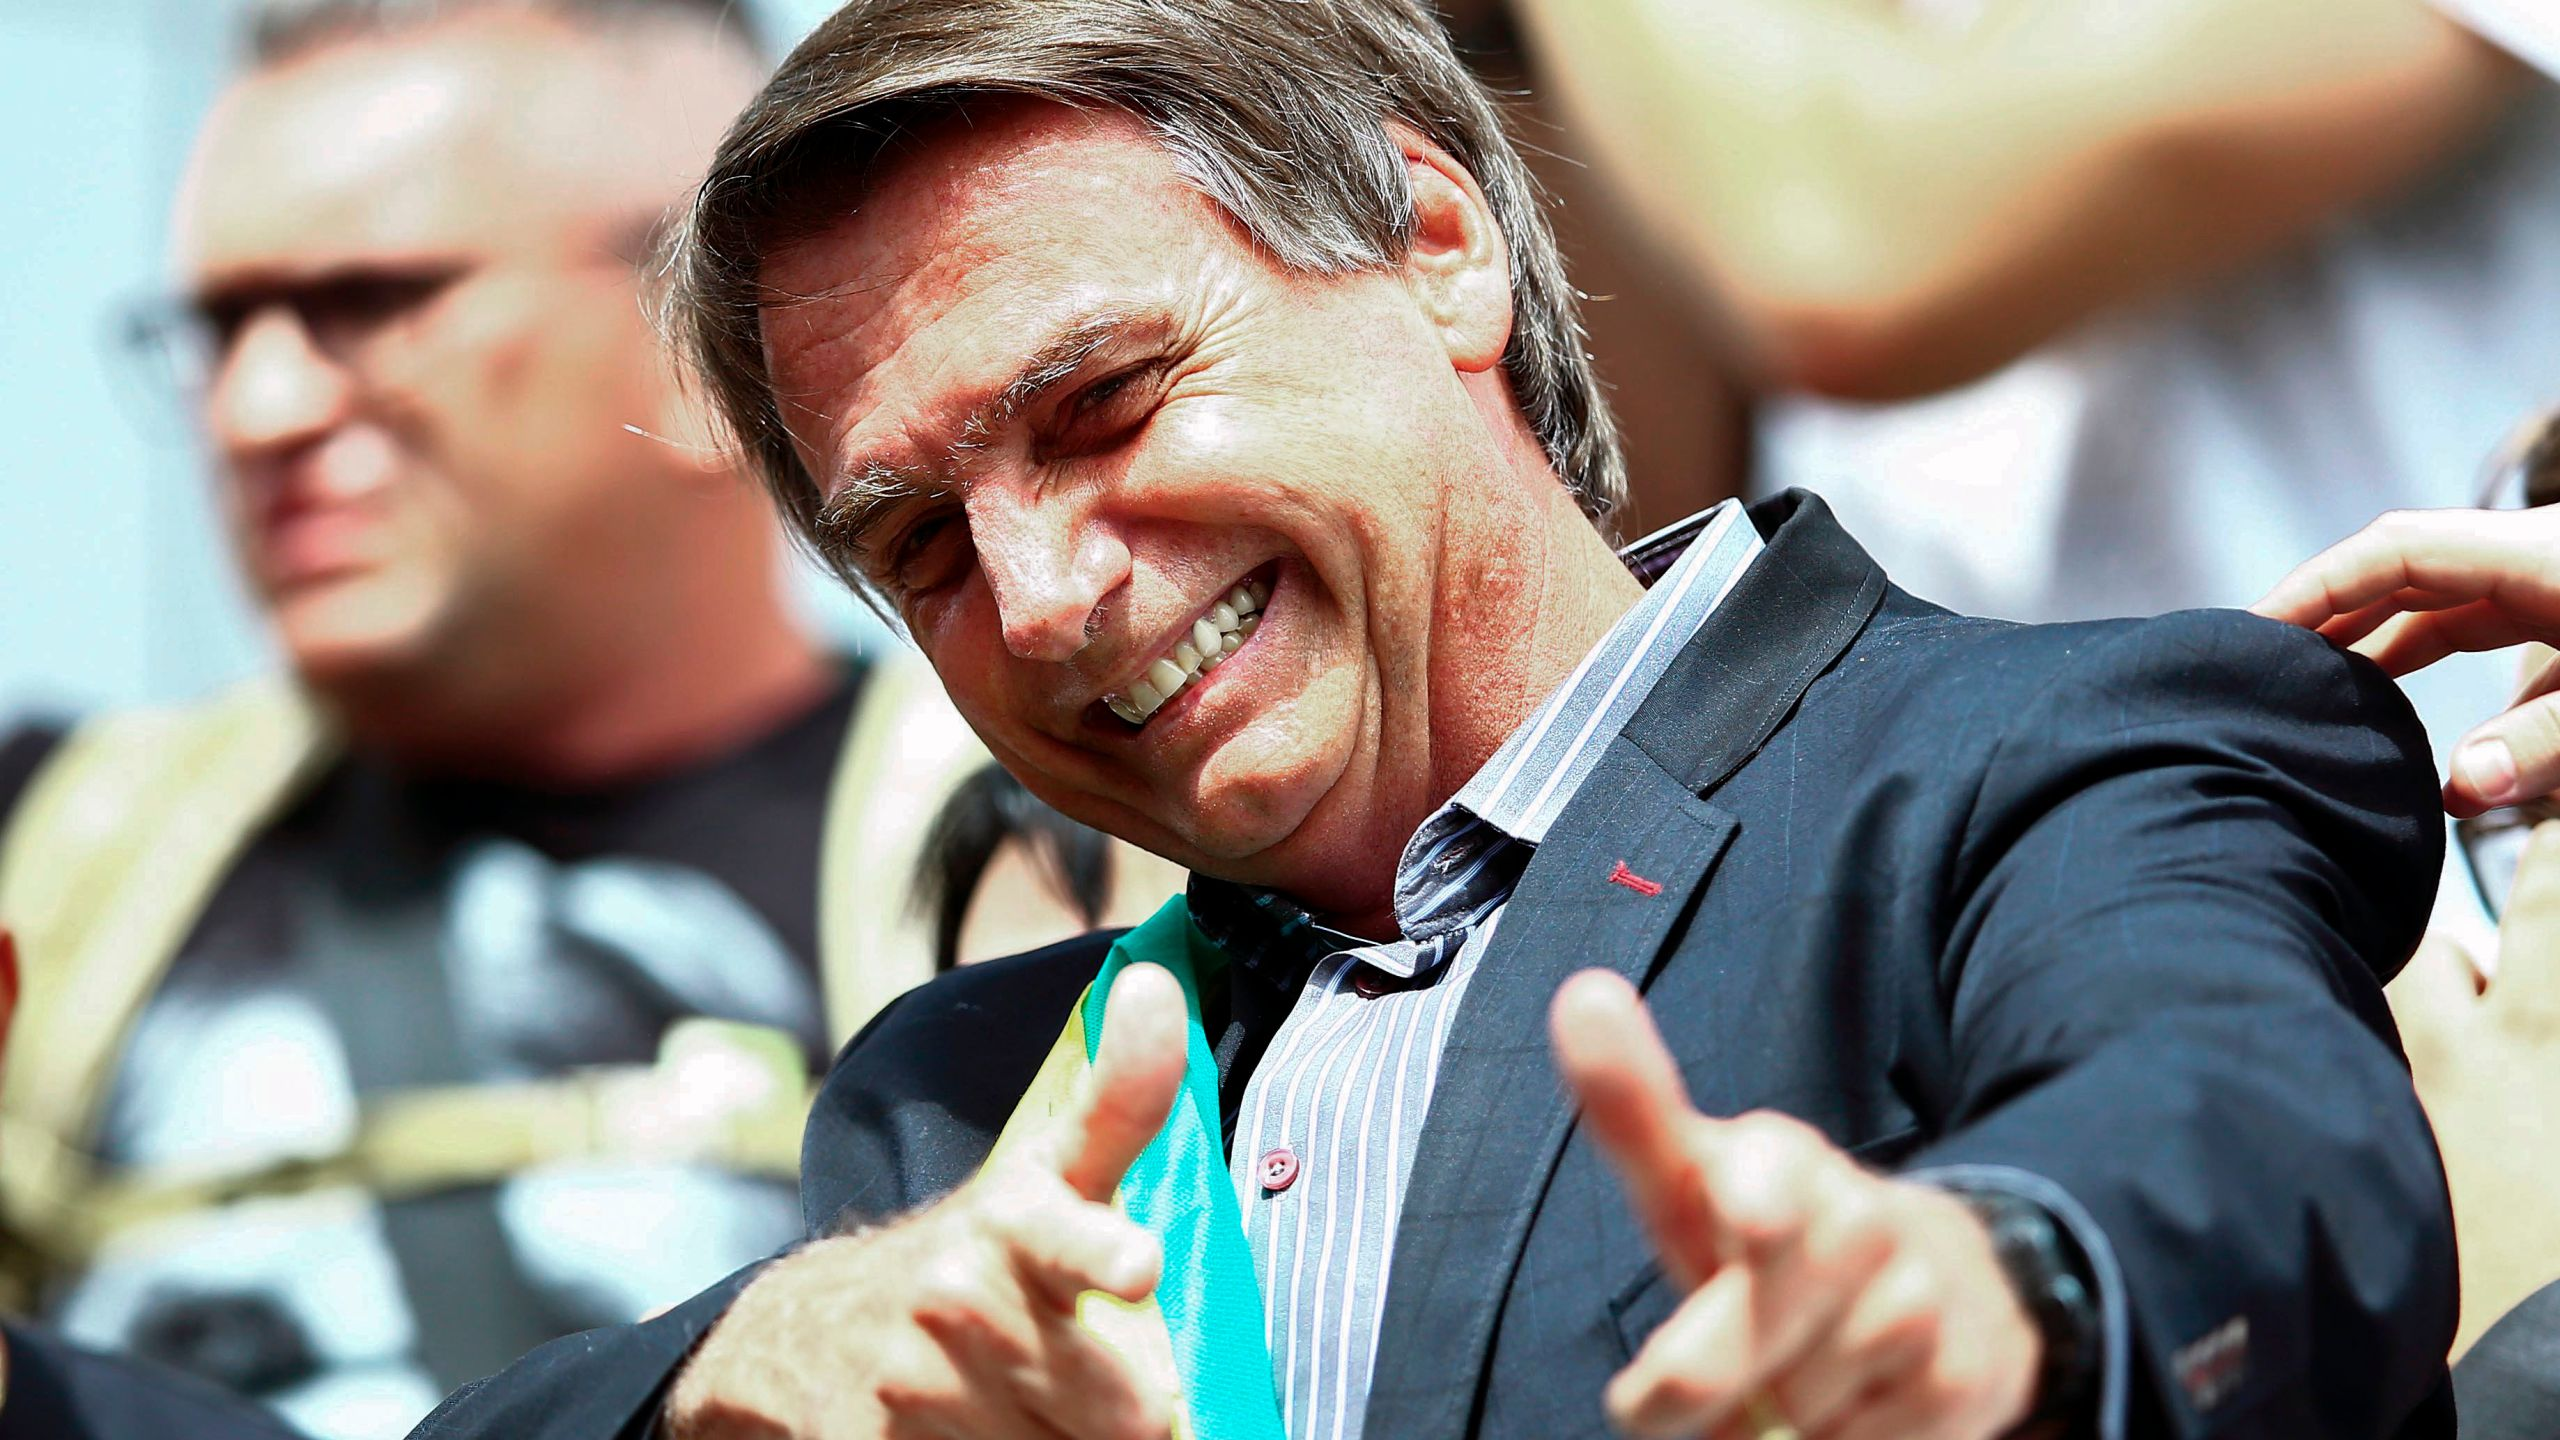 Jair Bolsonaro gives a thumbs up to supporters during a rally at Afonso Pena airport in Curitiba, Brazil on March 28, 2018. (Credit: HEULER ANDREY/AFP/Getty Images)